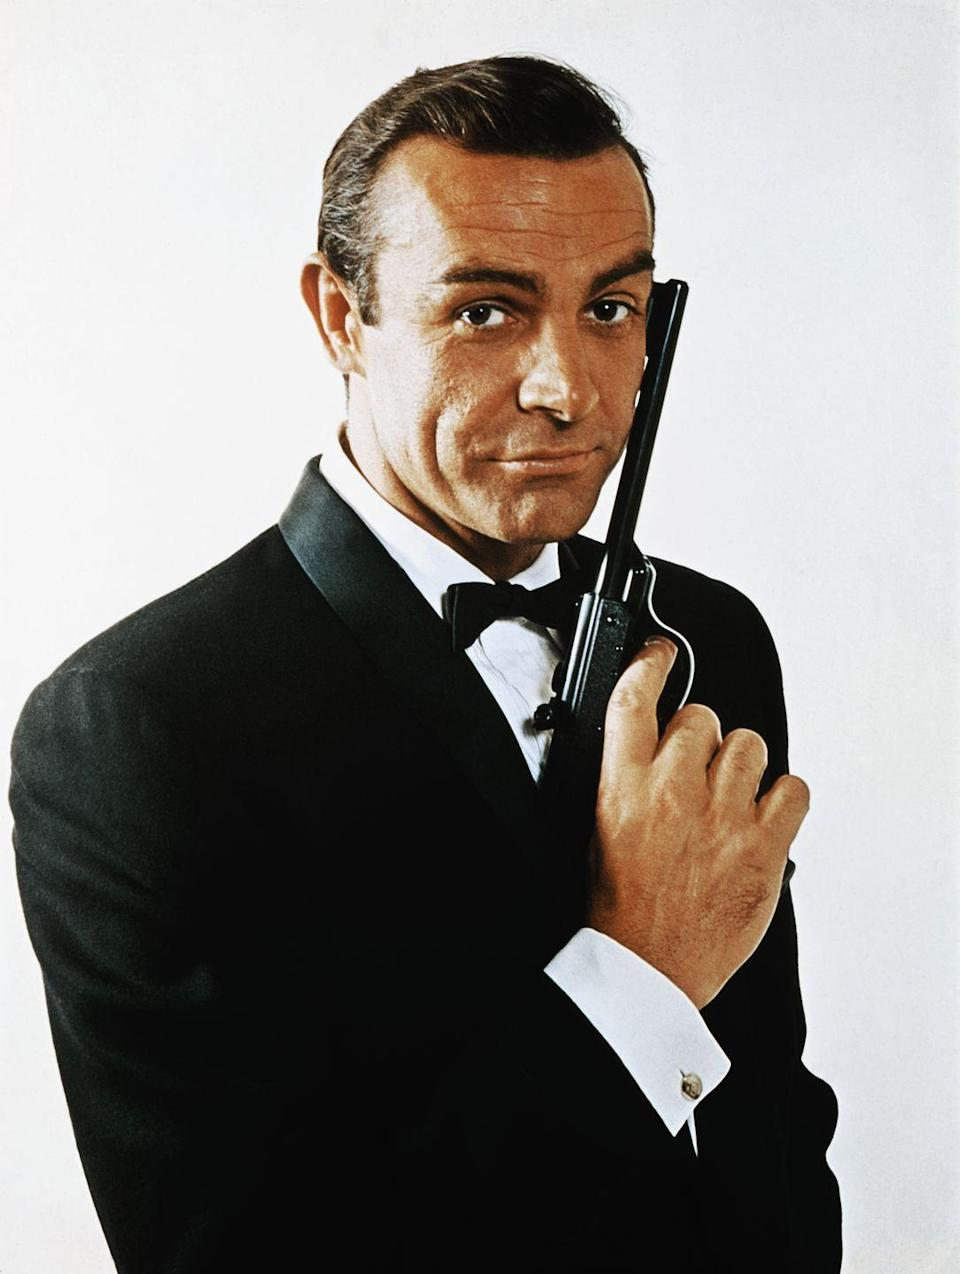 """<p>He created the mold for Bond and, for many fans, will always be the quintessential 007. What Connery gave Bond, more than anything else, was the cool factor. He was suave and quick with a dry one-liner. (""""It just so happens that I like conch chowder,"""" which Connery purrs in <em>Thunderball</em>, will forever be my favorite Bond line.) It's this aspect of the character that makes the Connery films rewatchable all these years later. </p><p><strong>Standout Film(s):</strong> <em>Goldfinger </em>and <em>Thunderball</em></p>"""